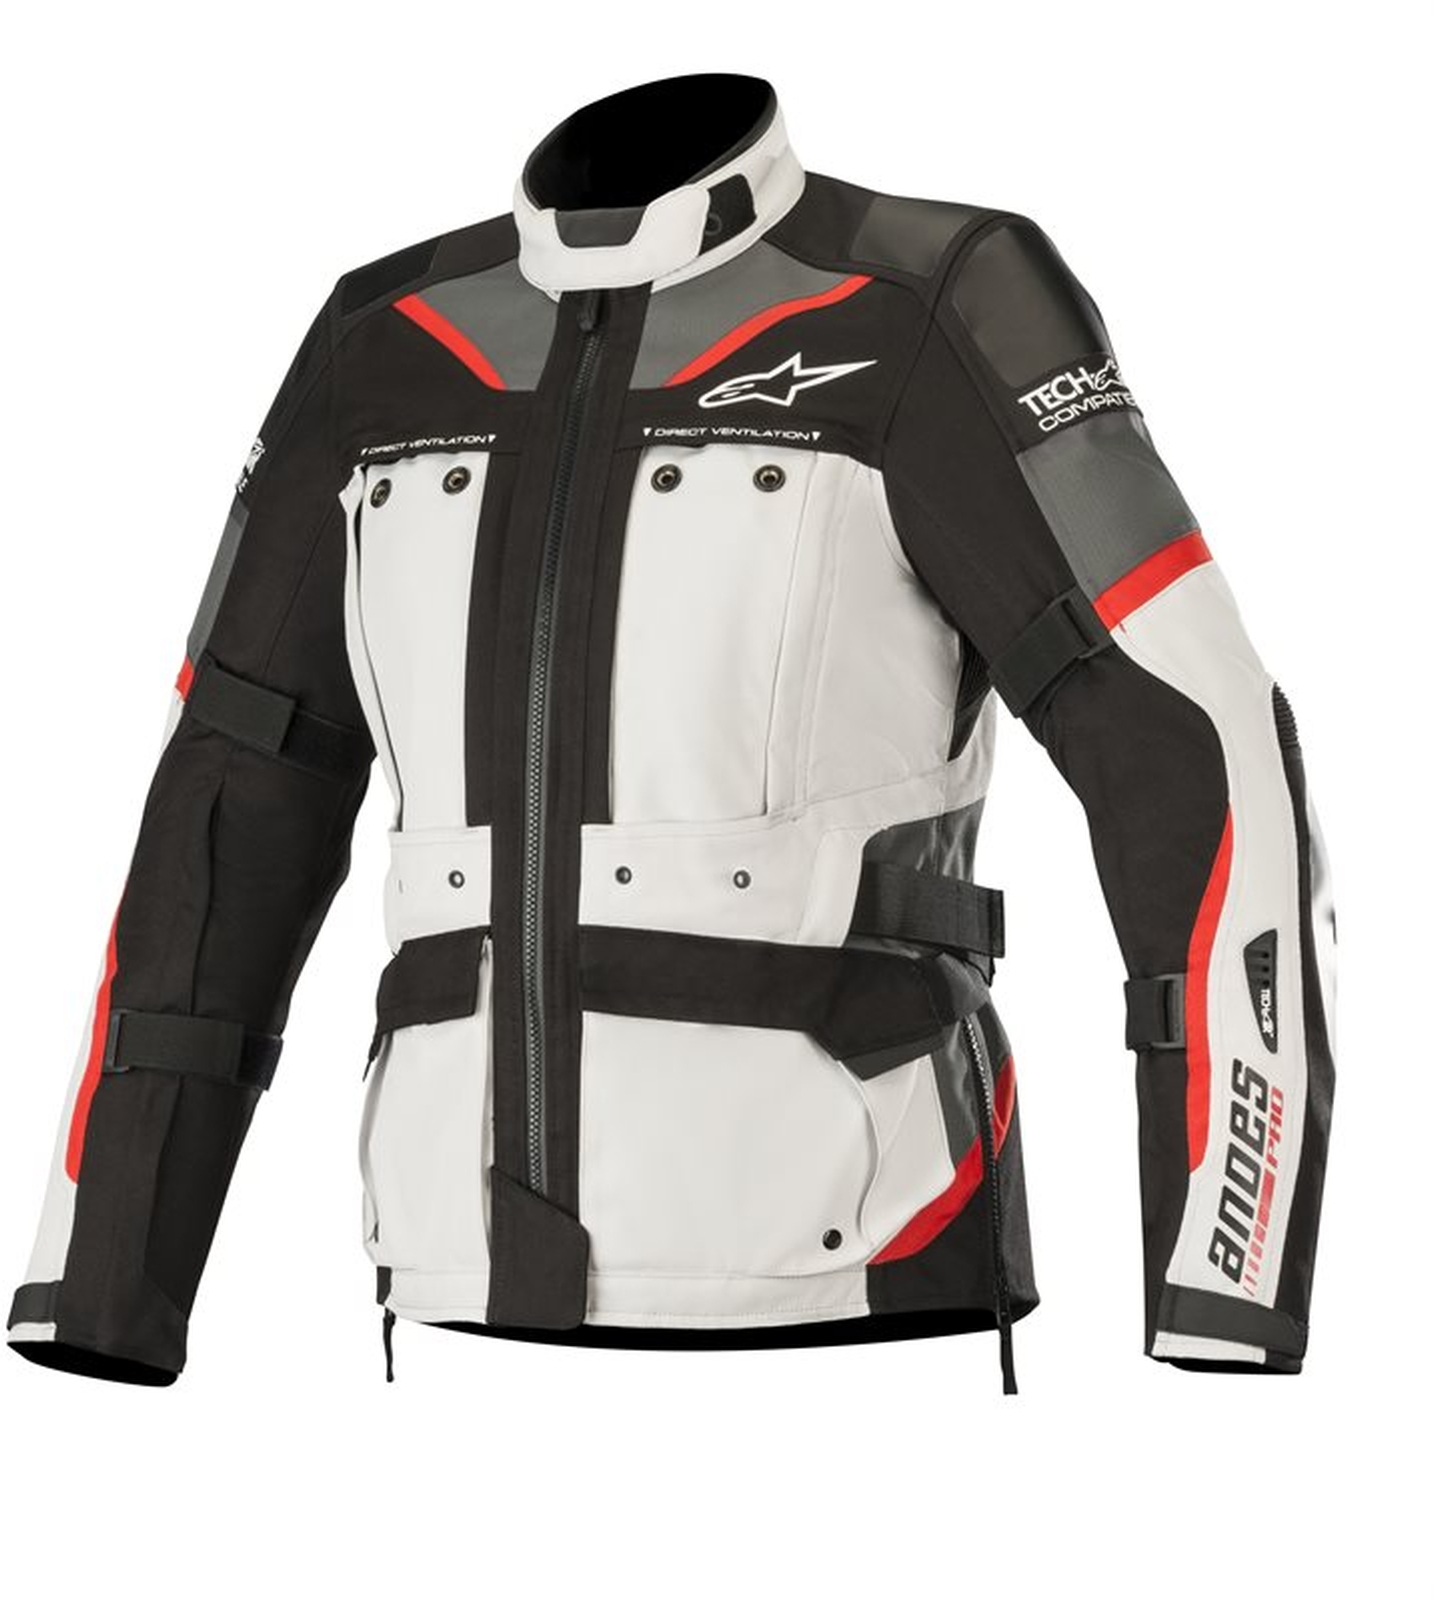 STELLA ANDES PRO DRYSTAR JACKET TECH-AIR COMPATIBL